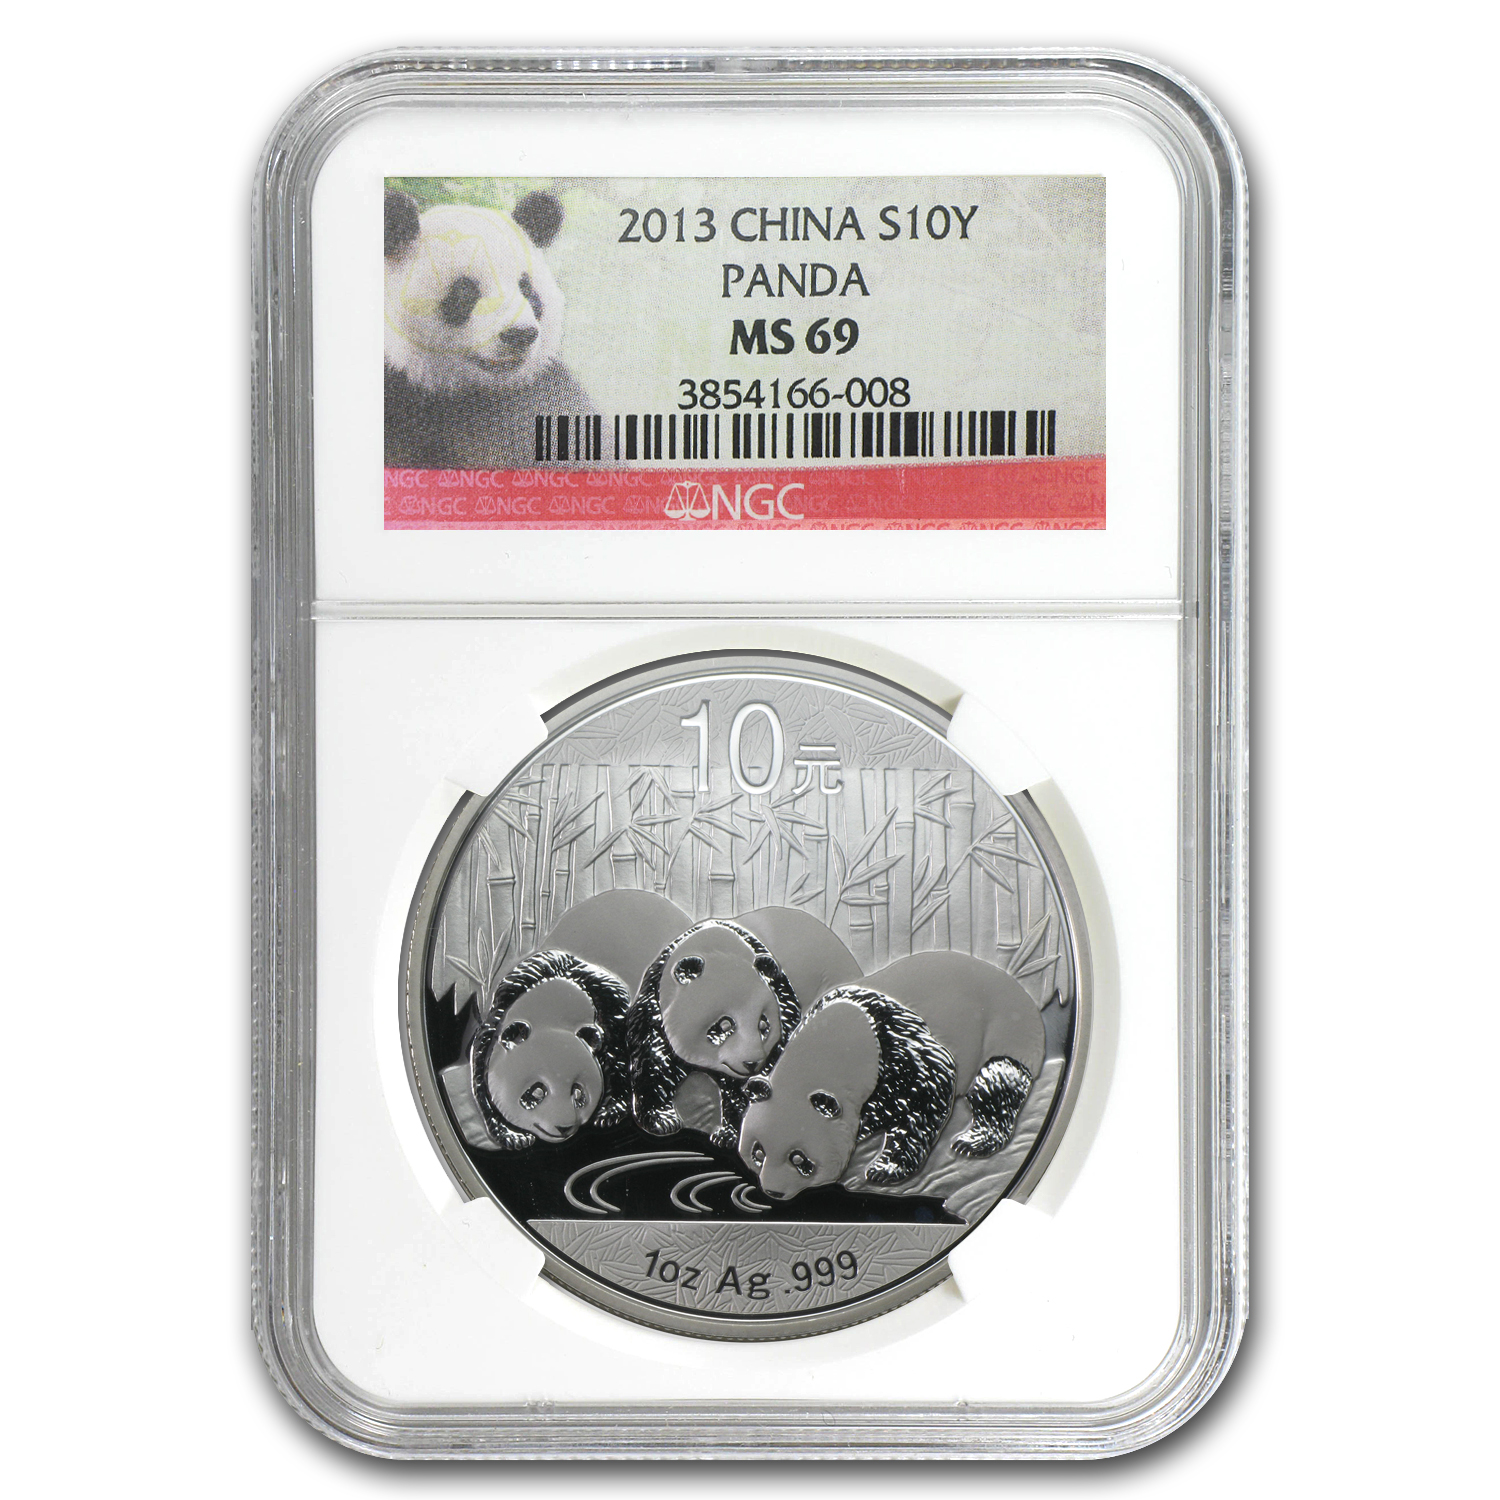 2013 China 1 oz Silver Panda MS-69 NGC